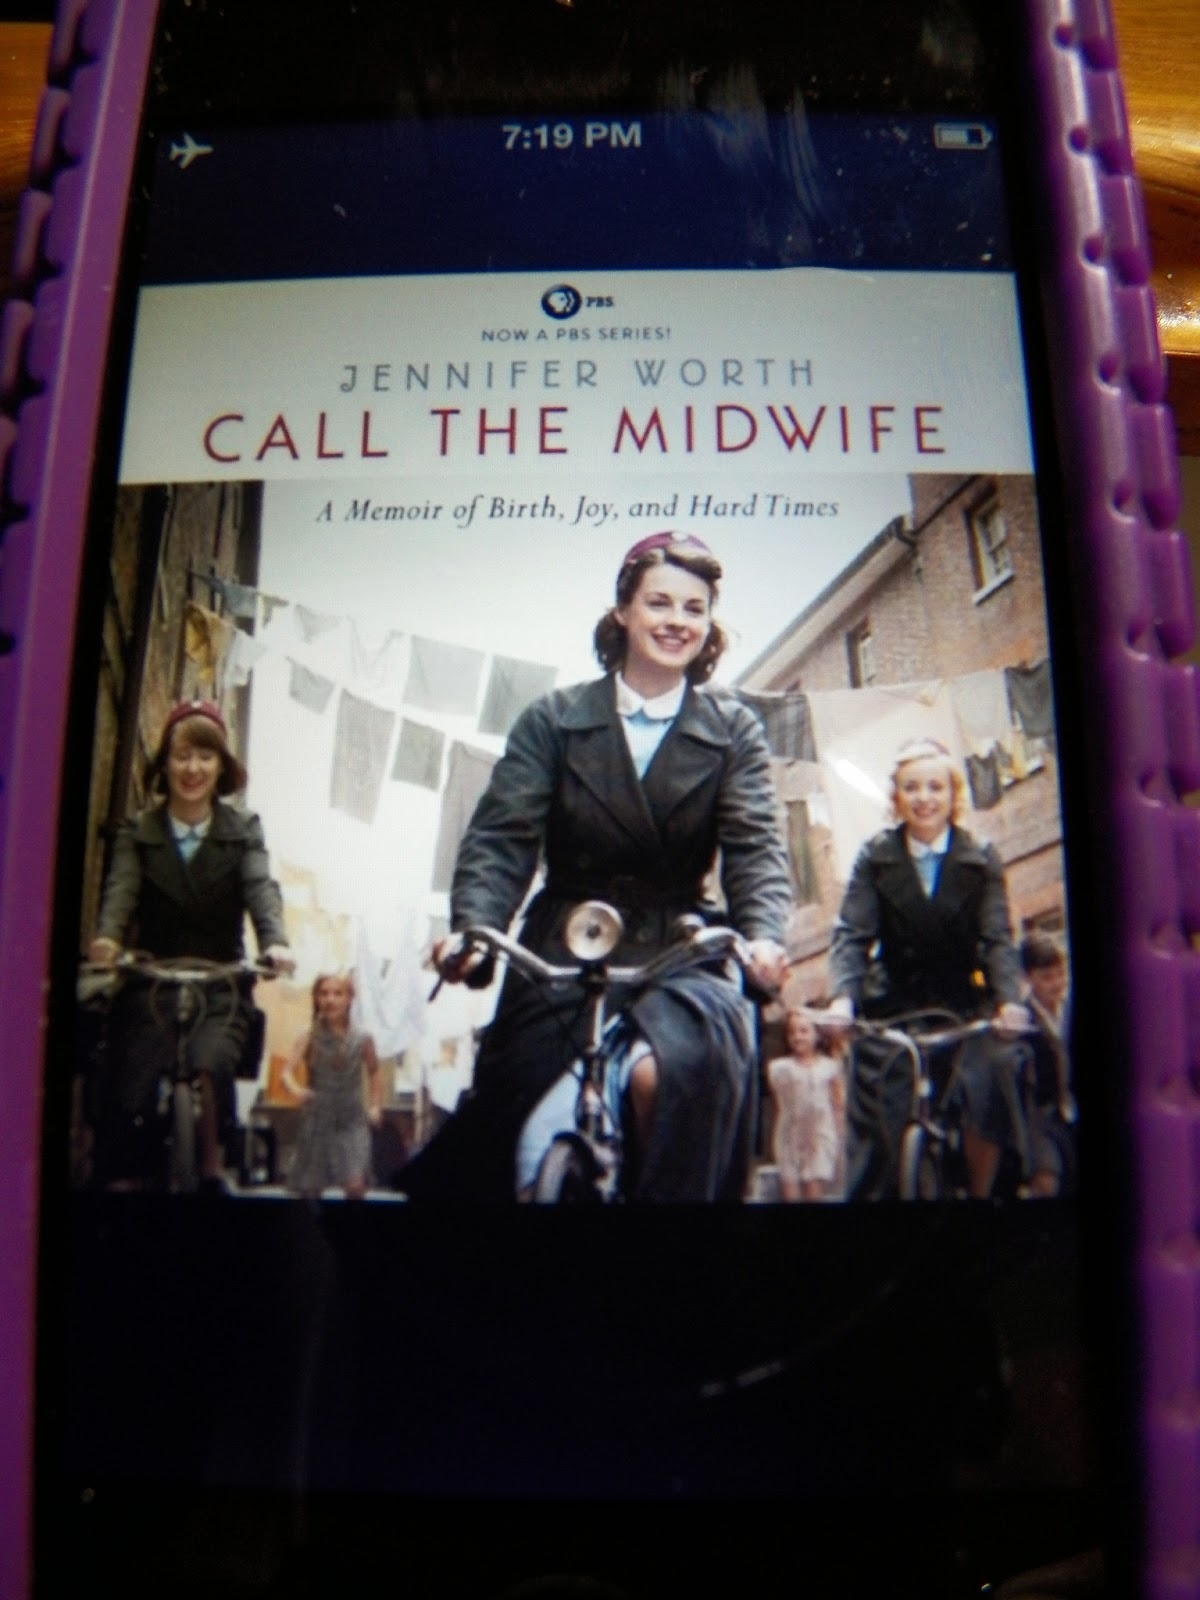 http://www.audible.com/pd/Bios-Memoirs/Call-the-Midwife-Audiobook/B00937SXLO/ref=a_search_c4_1_1_srTtl?qid=1395363049&sr=1-1